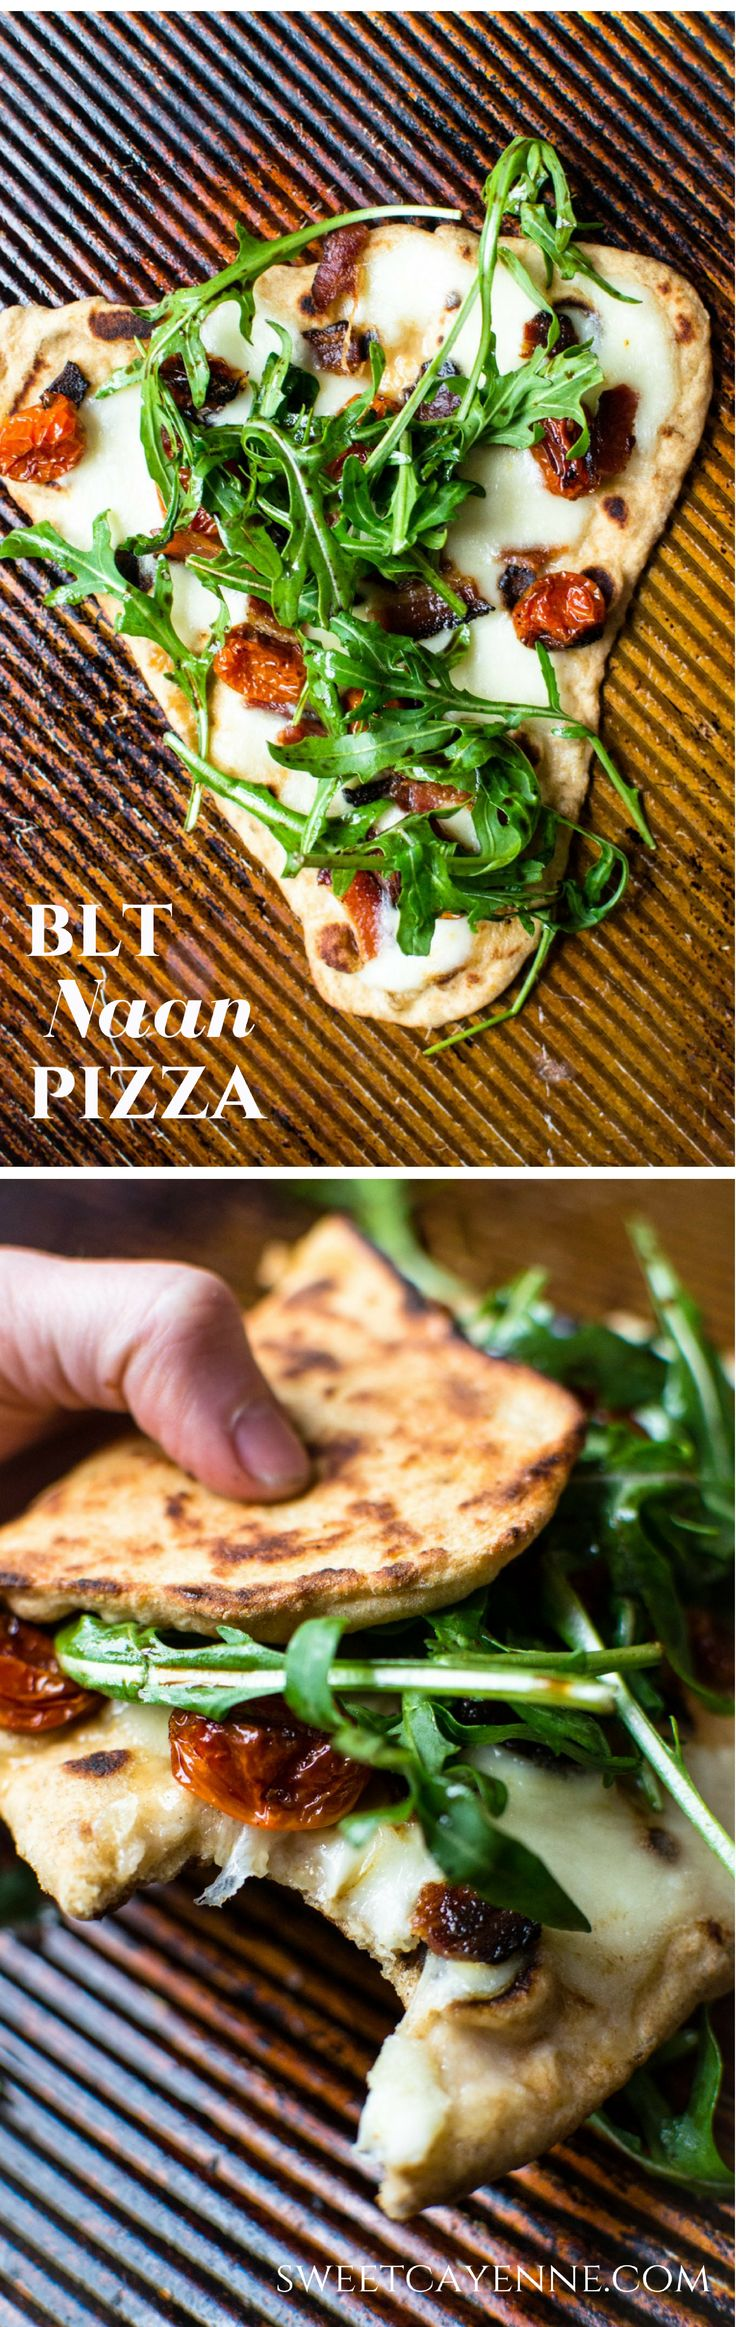 Blt Naan Pizza €� A New Weeknight Favorite